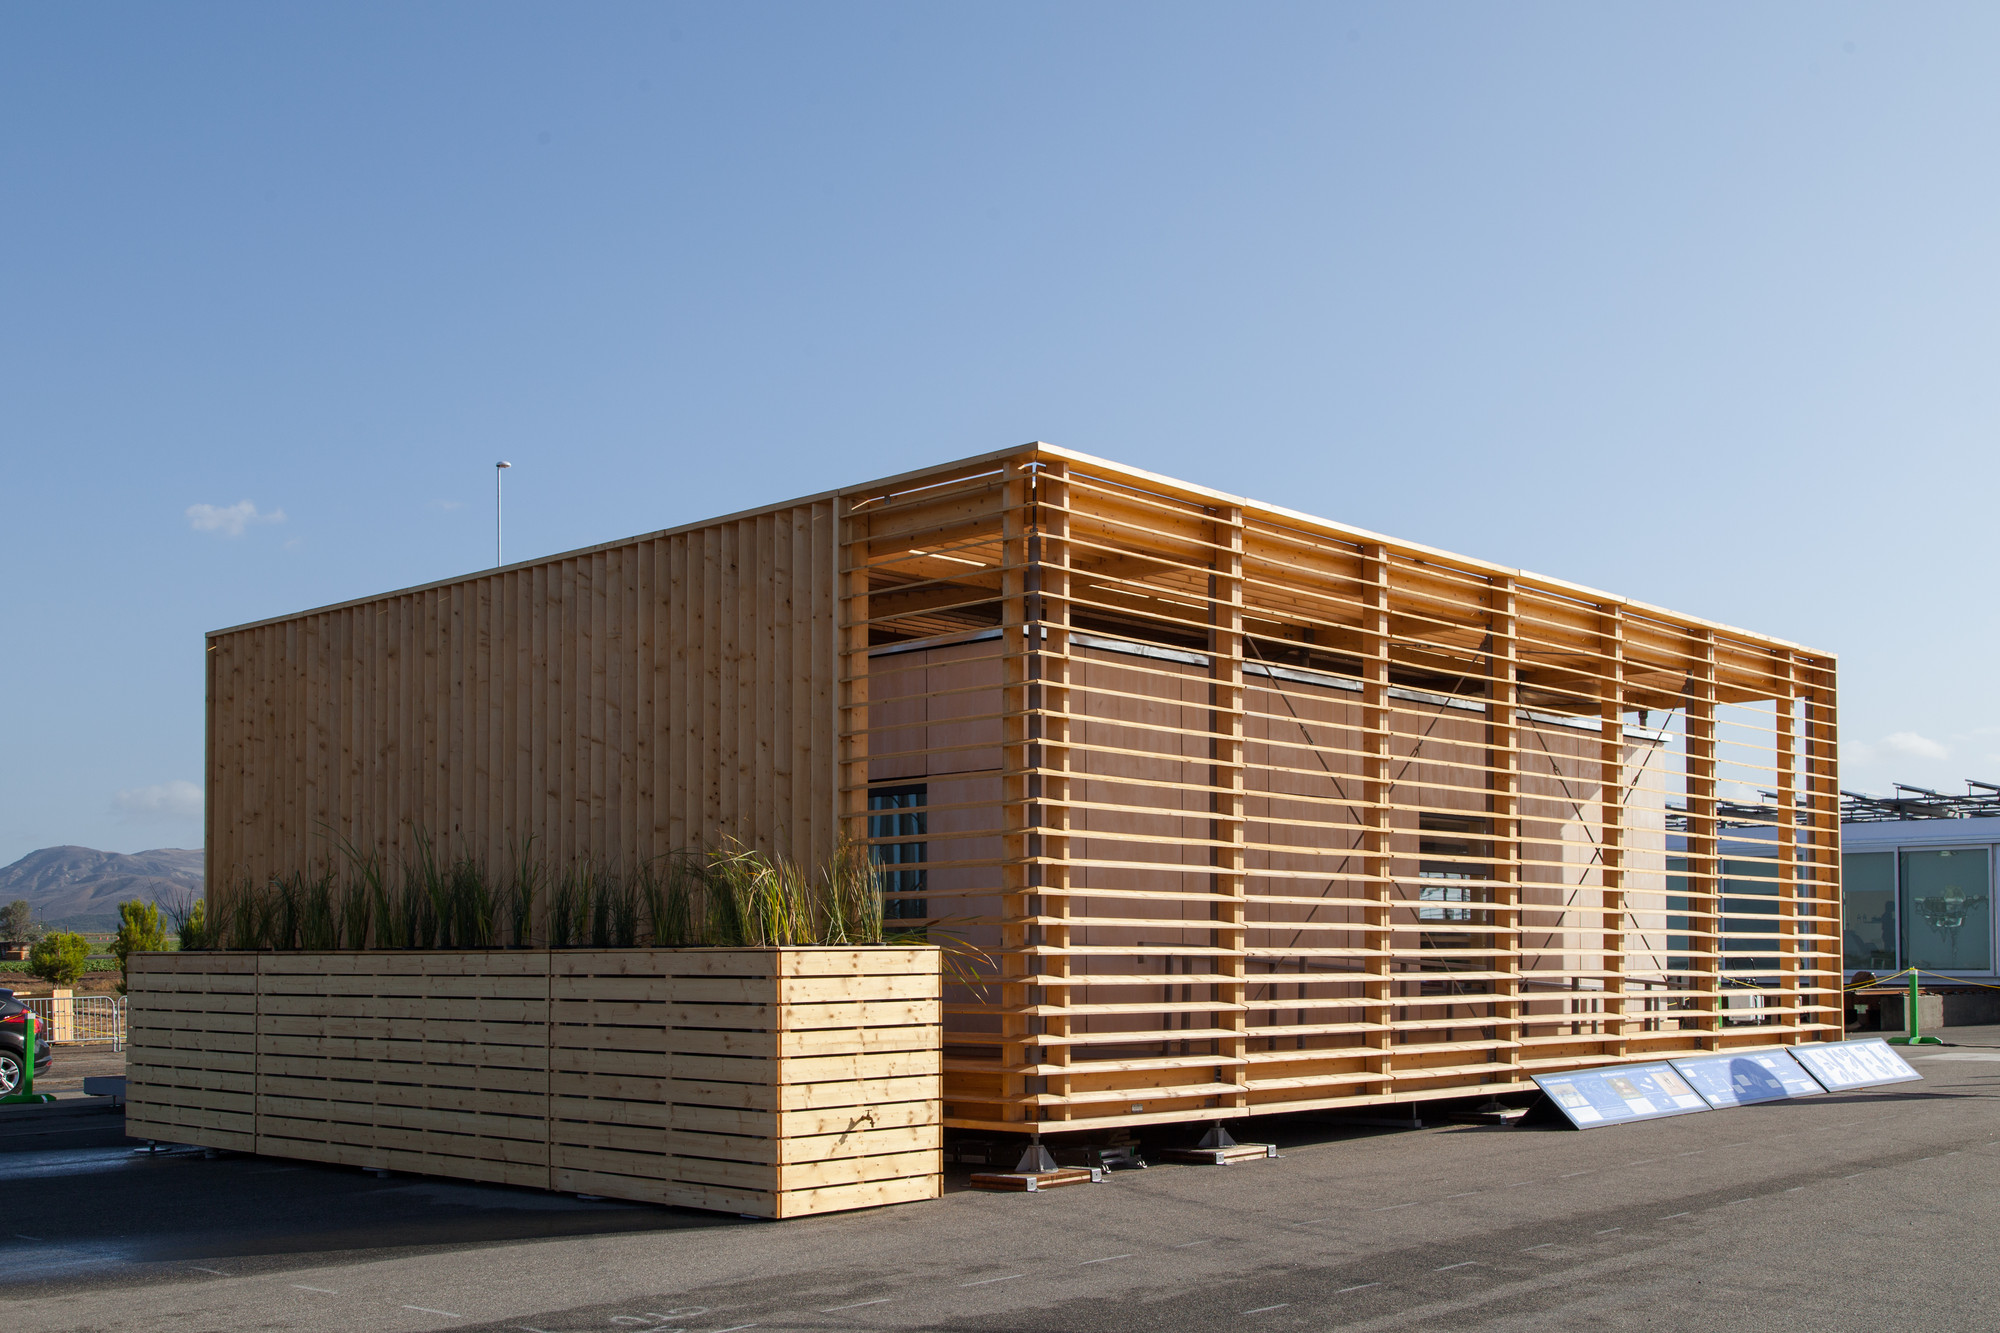 © Jason Flakes/U.S. Department of Energy Solar Decathlon